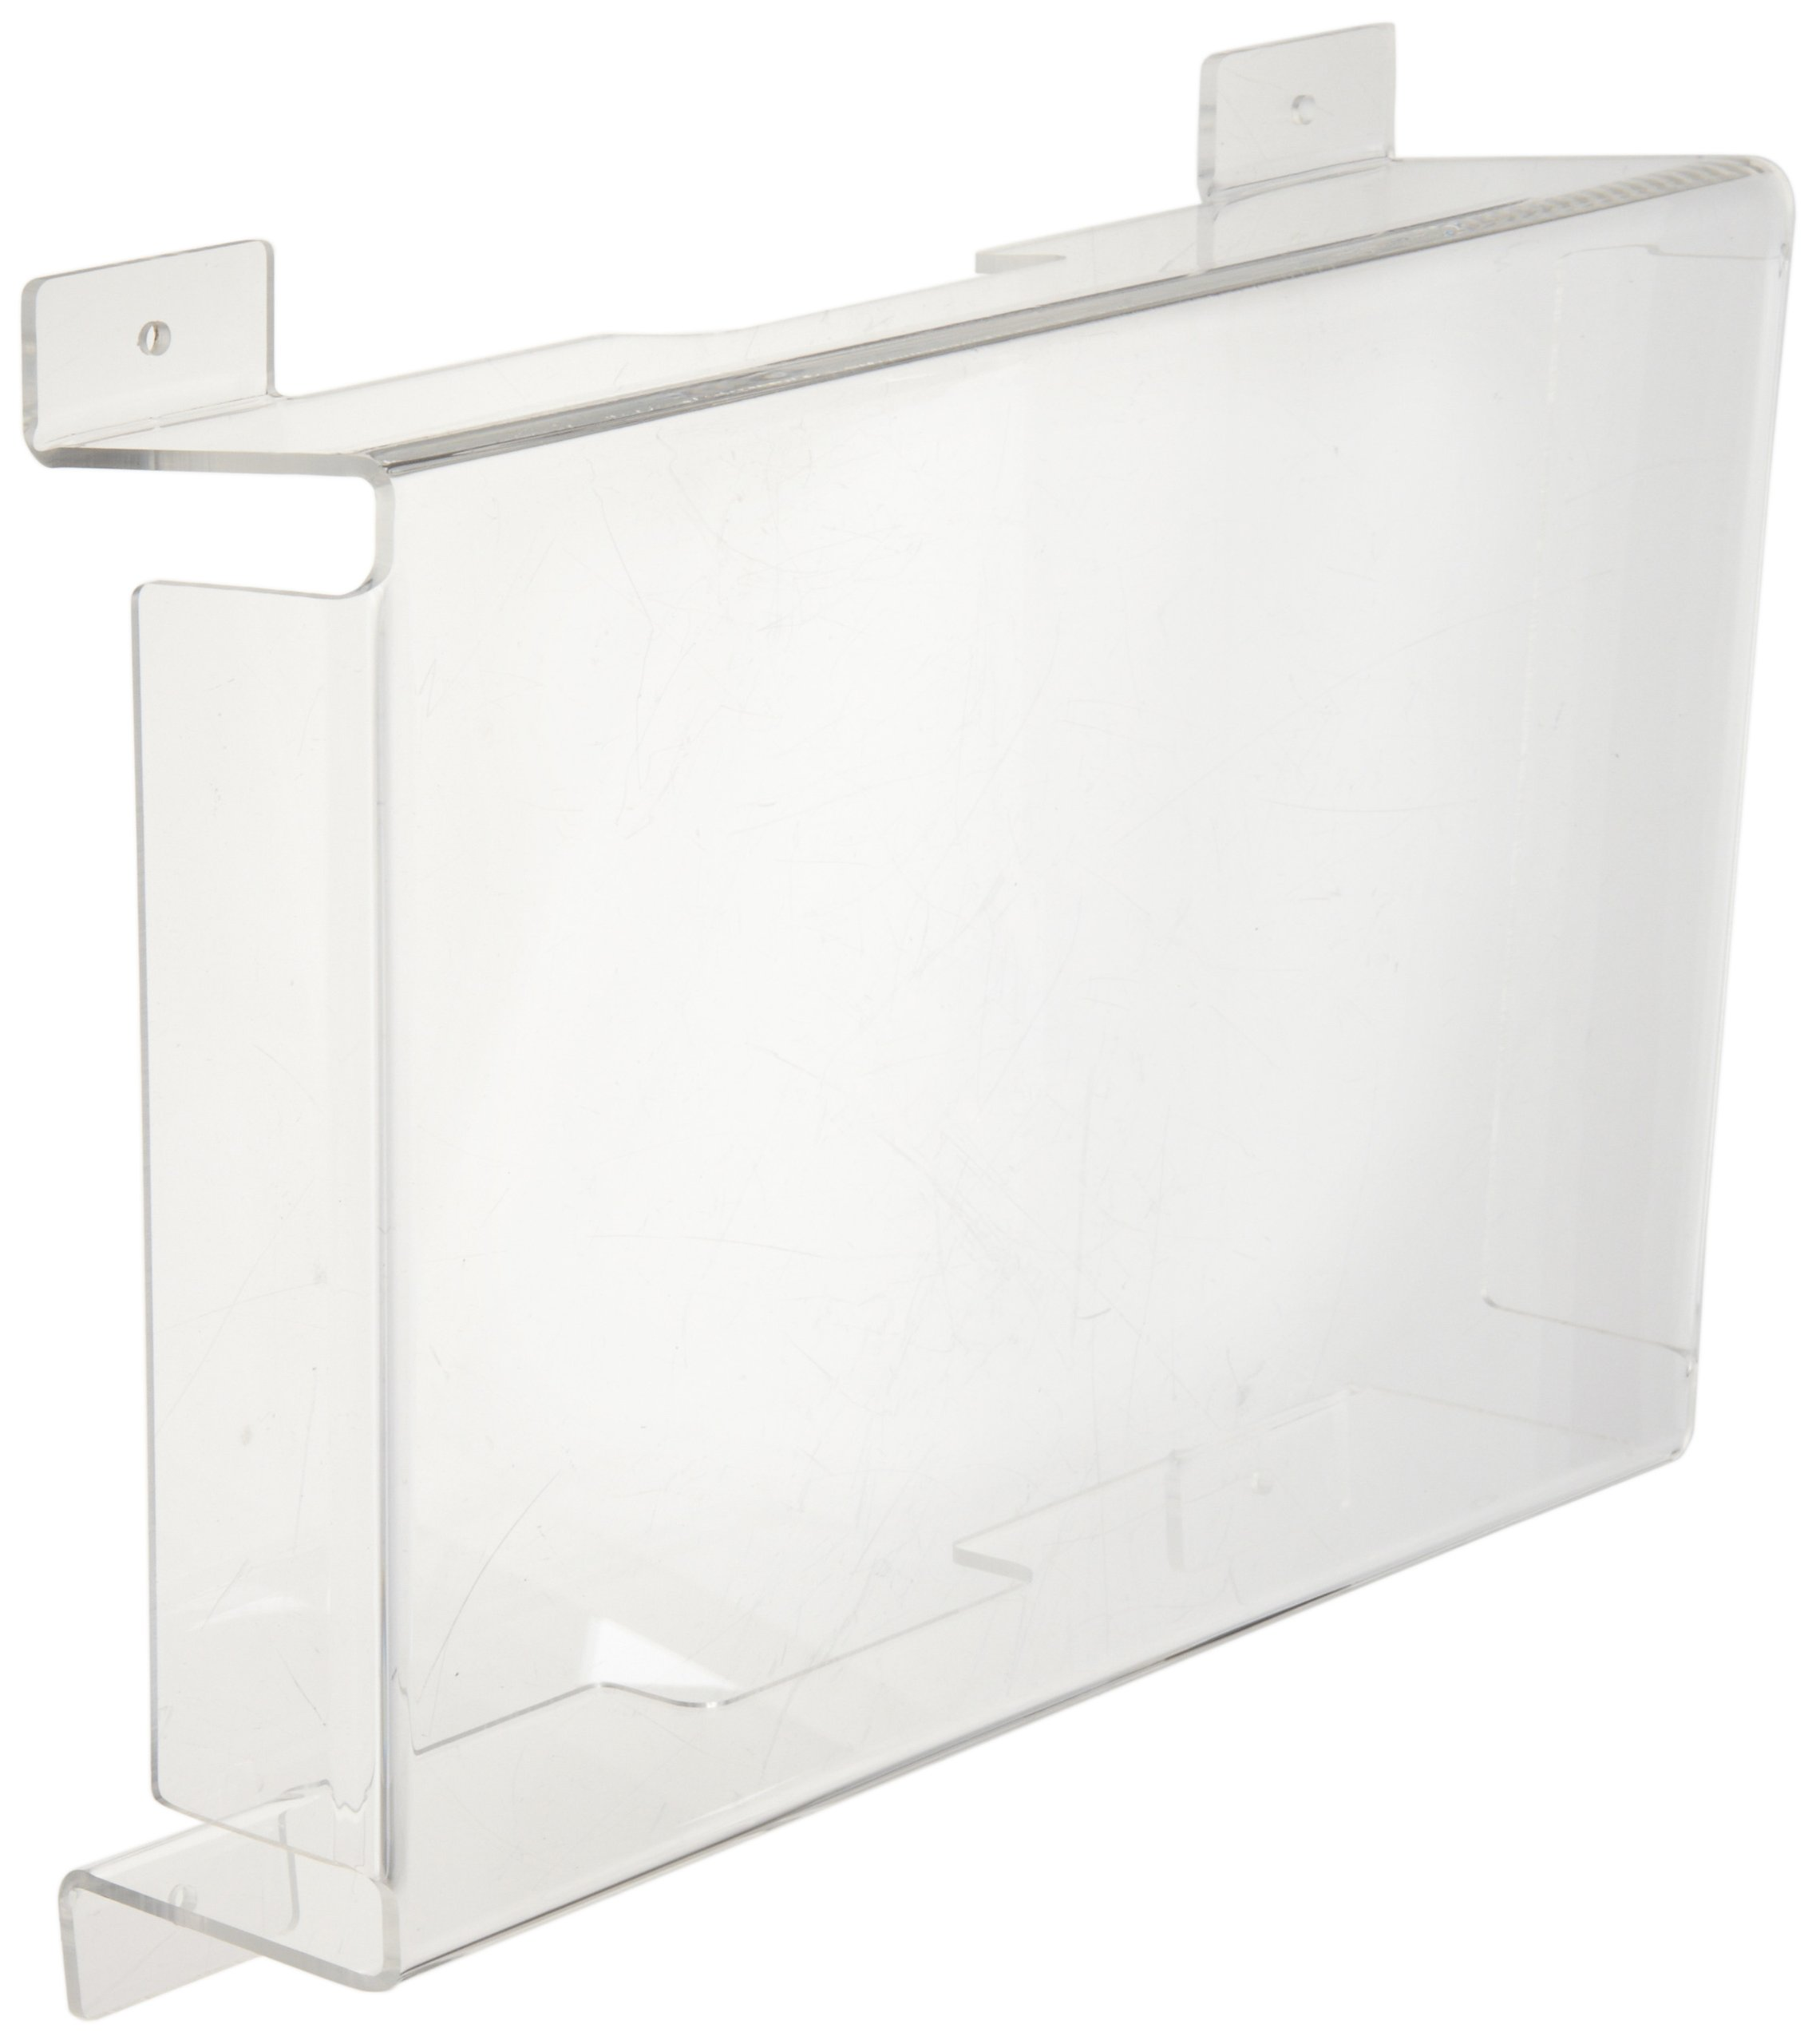 Morris Products 73090 Polycarbonate Vandal/Environmental Shield Guard Exit Light, 15'' Width, 6'' Depth, Used With Exit Lights & Cast Aluminum Exit Lights